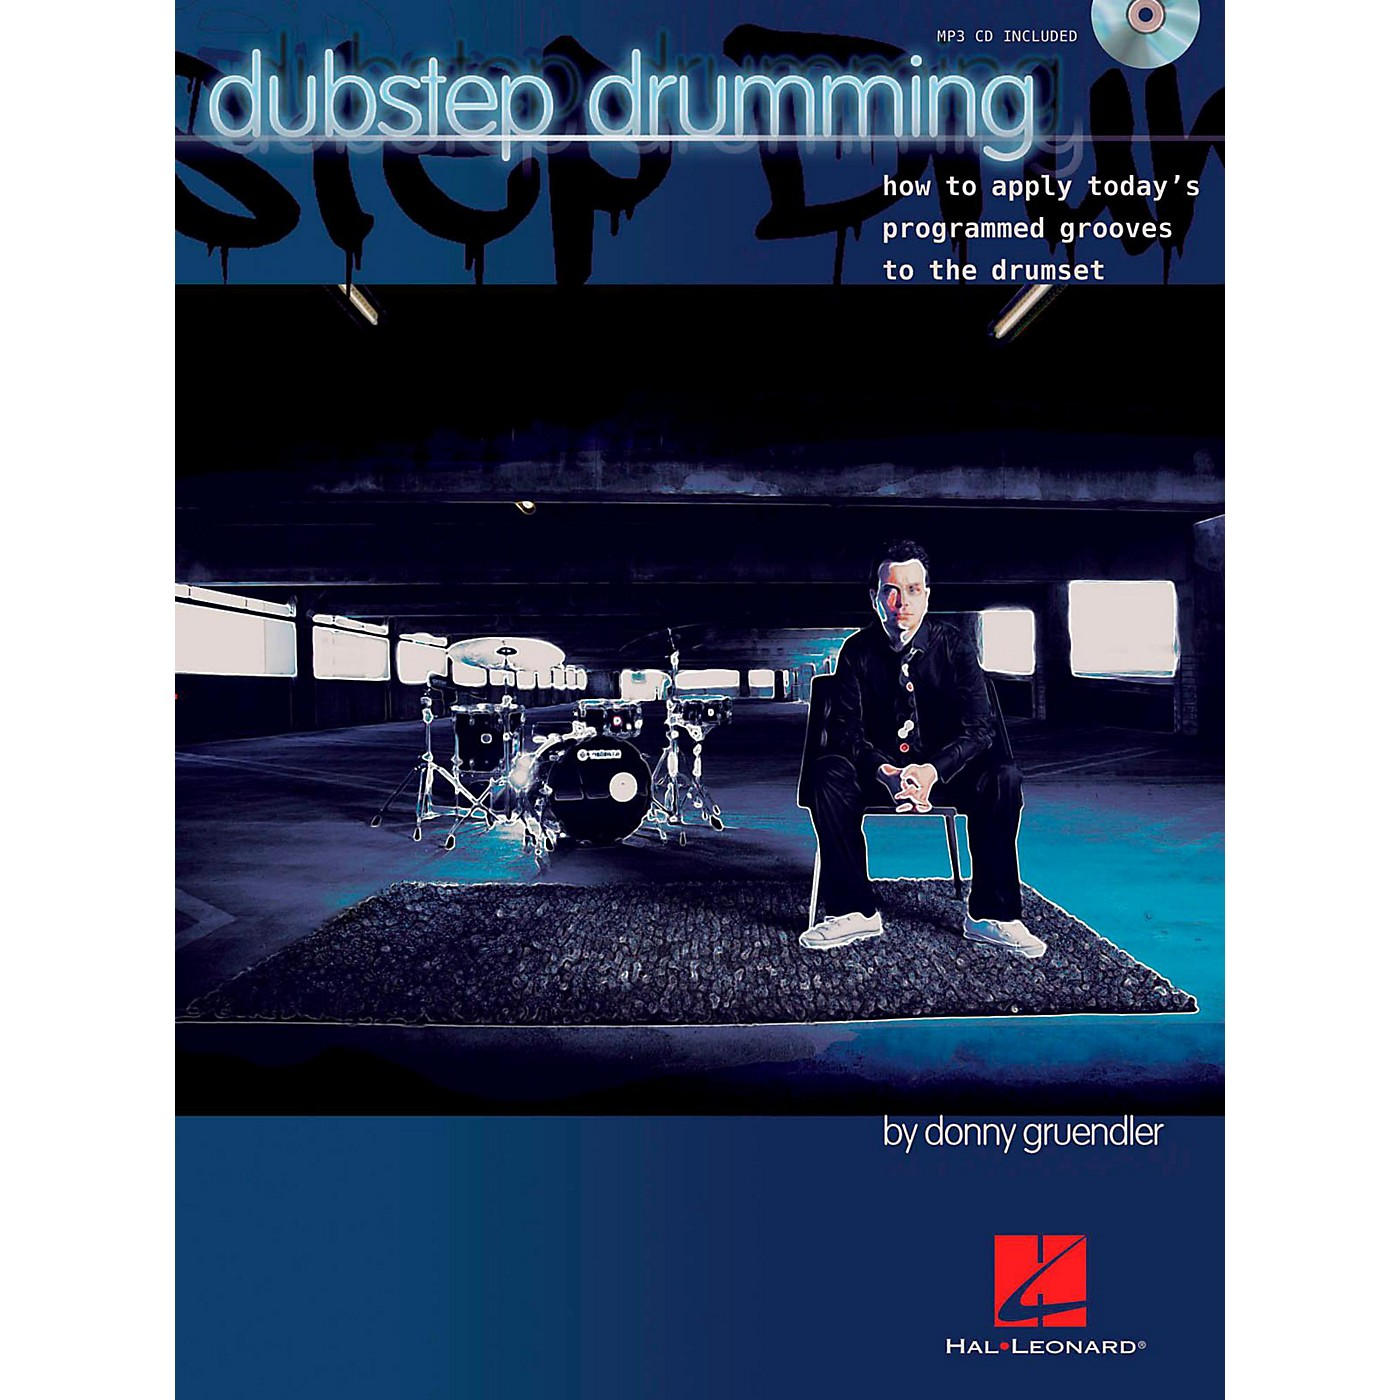 Hal Leonard Dubstep Drumming How To Apply Today's Programmed Grooves To The Drumset Book/CD thumbnail